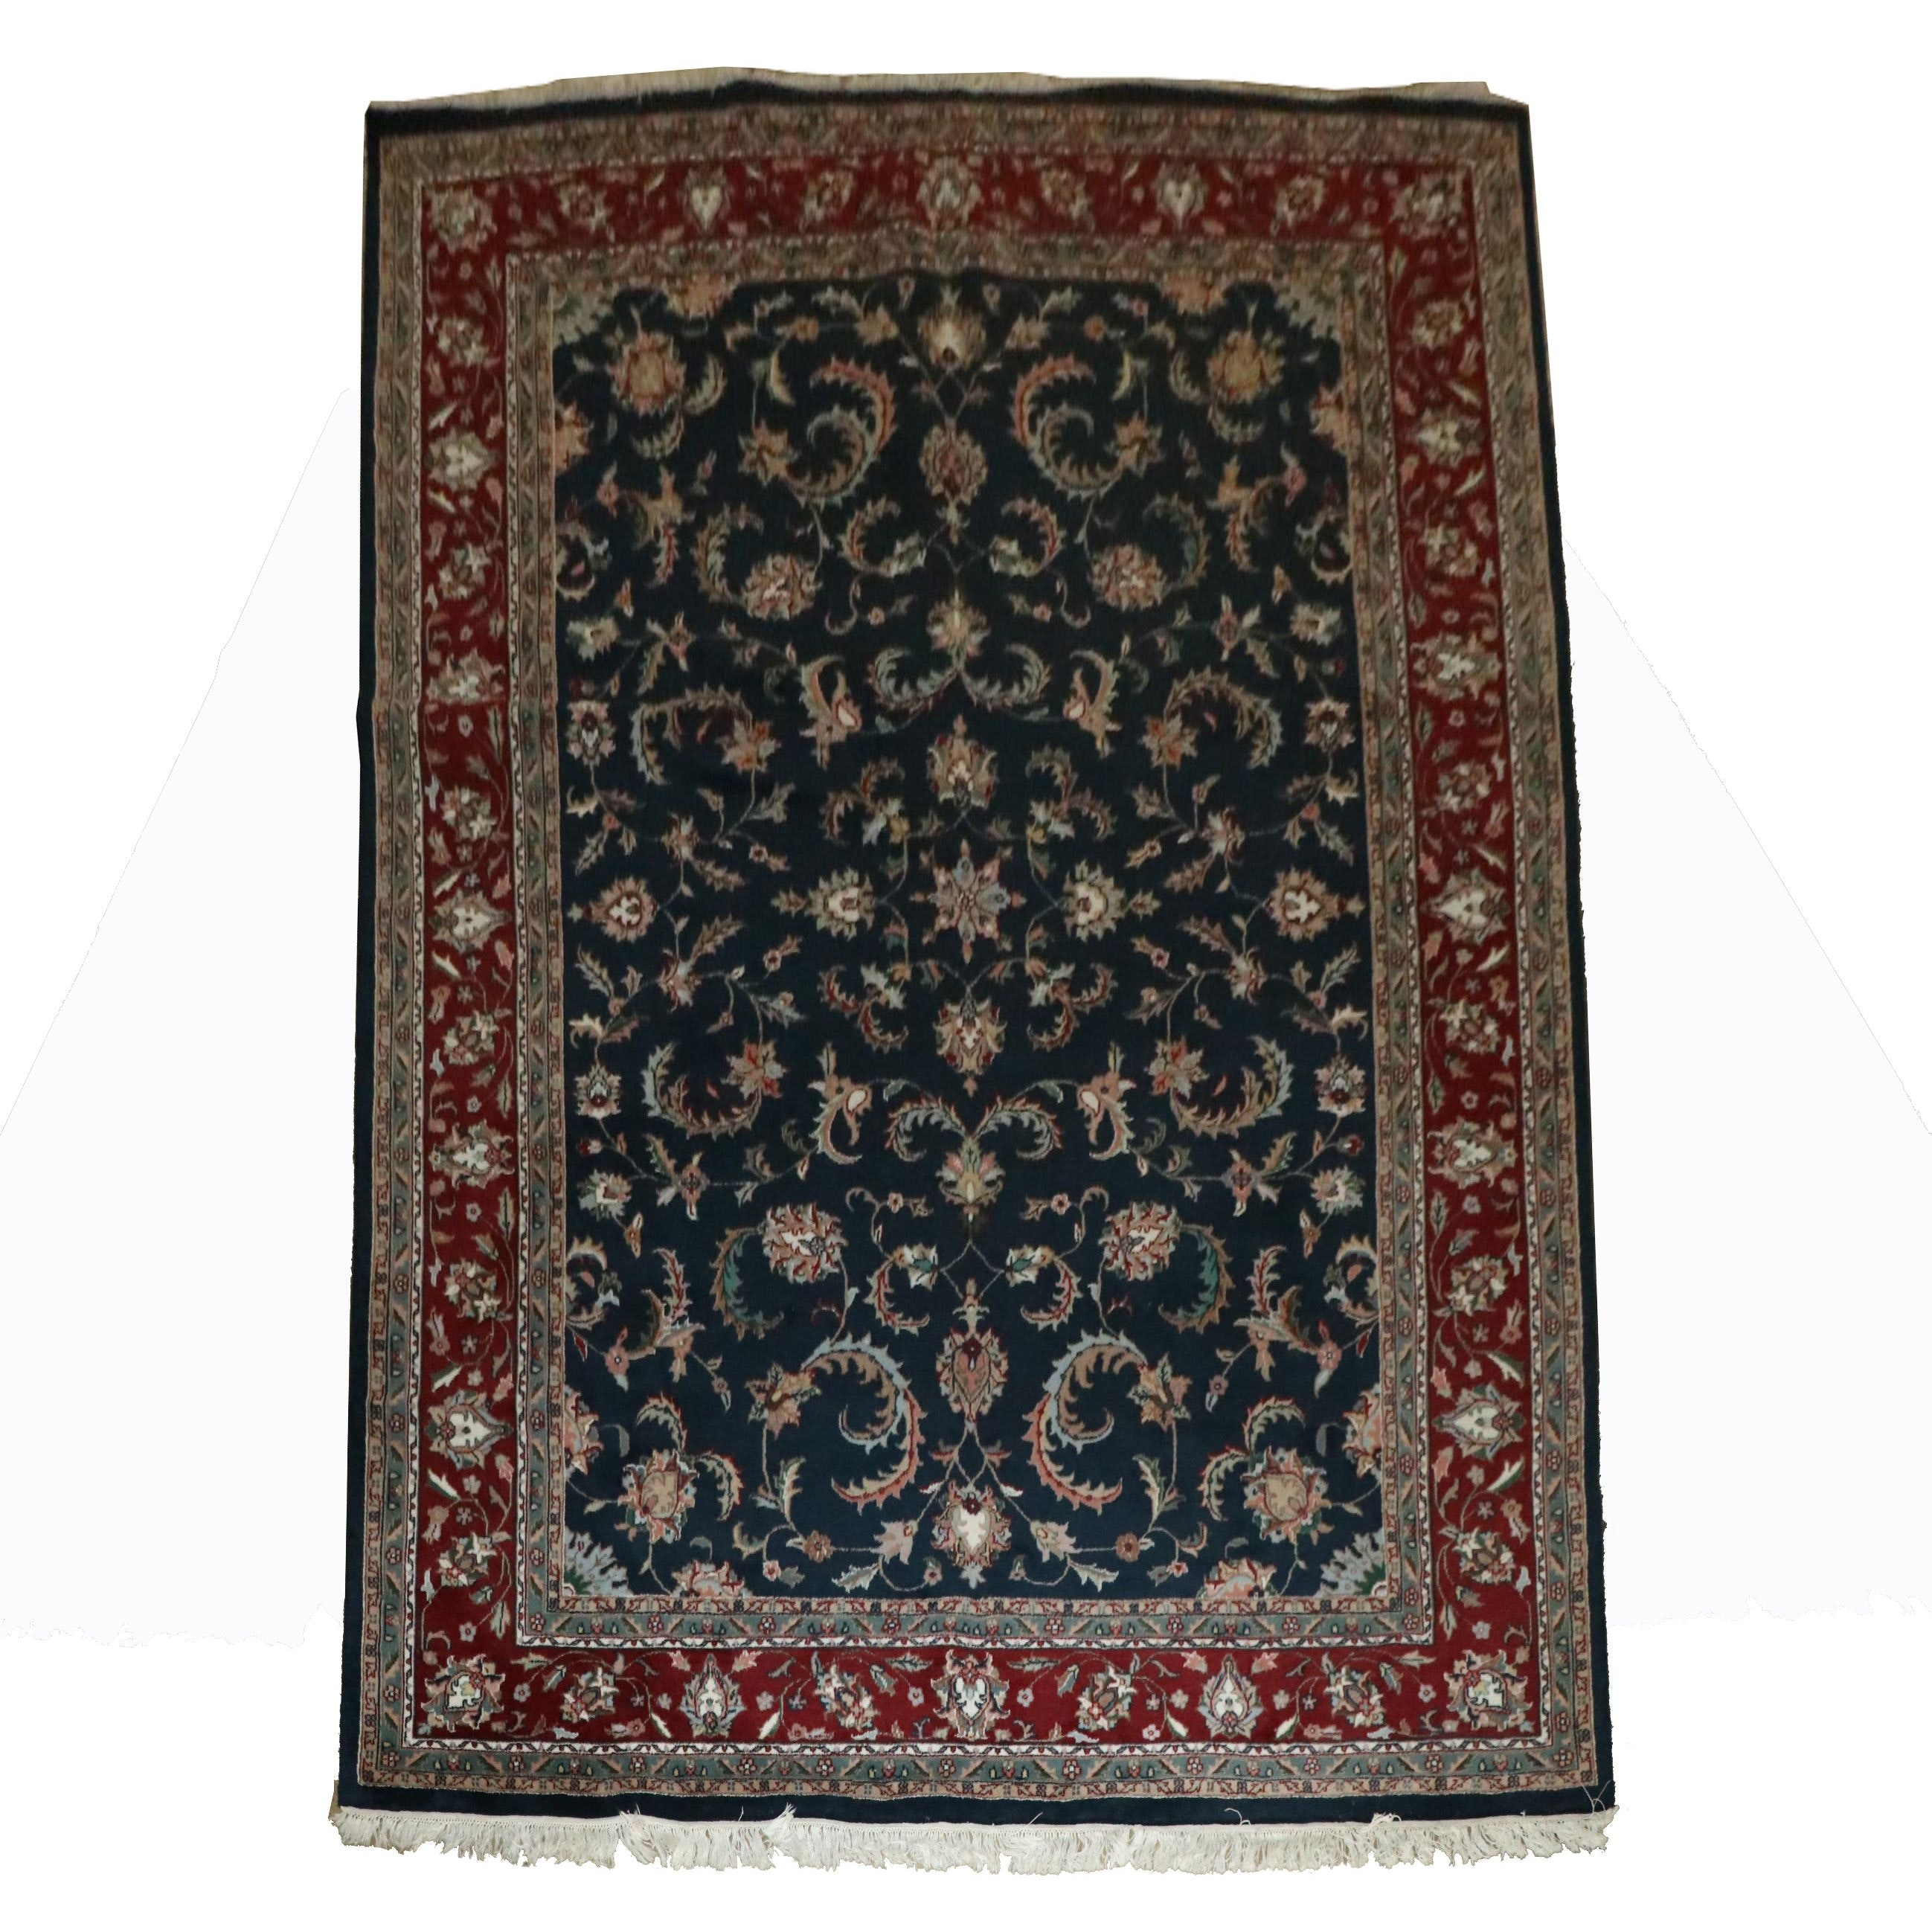 Hand-Knotted Indian Ajanta Carpet Emporium Wool Room Sized Rug